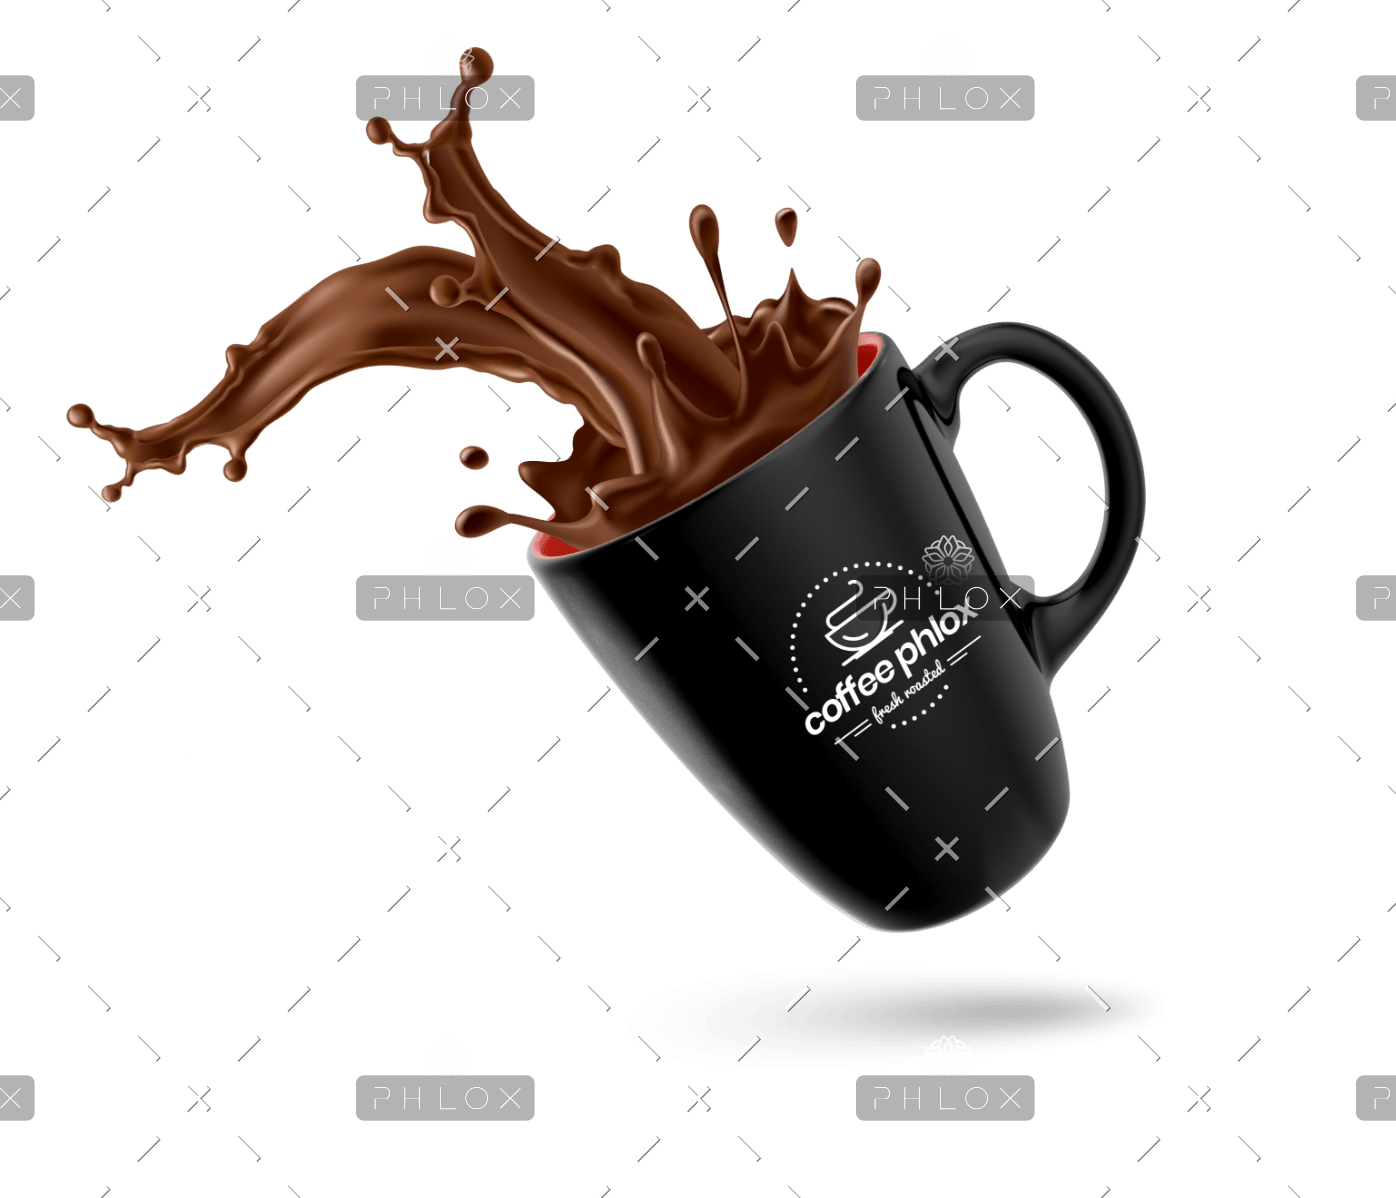 demo-attachment-16-Promotional_Coffee_Mug_Mockup_-_Mug_1_Black_Side.M152